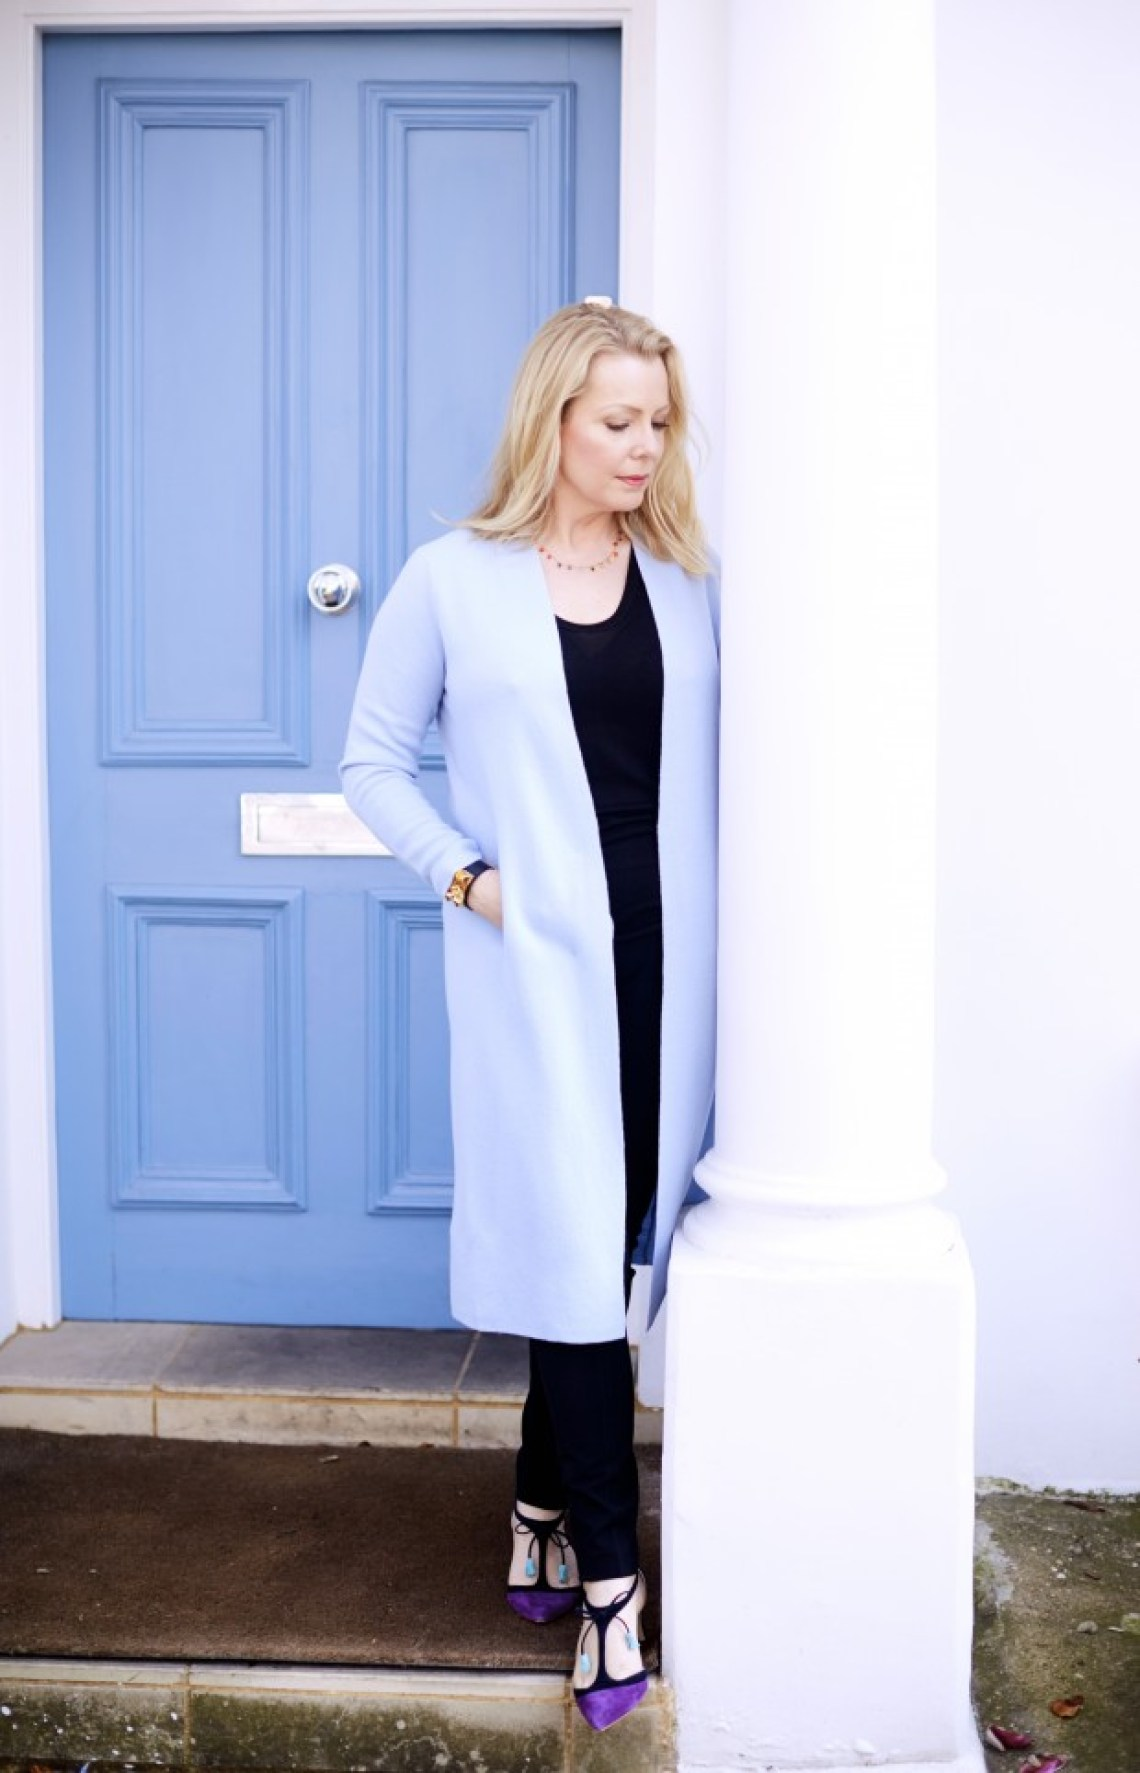 sky blue door and coat